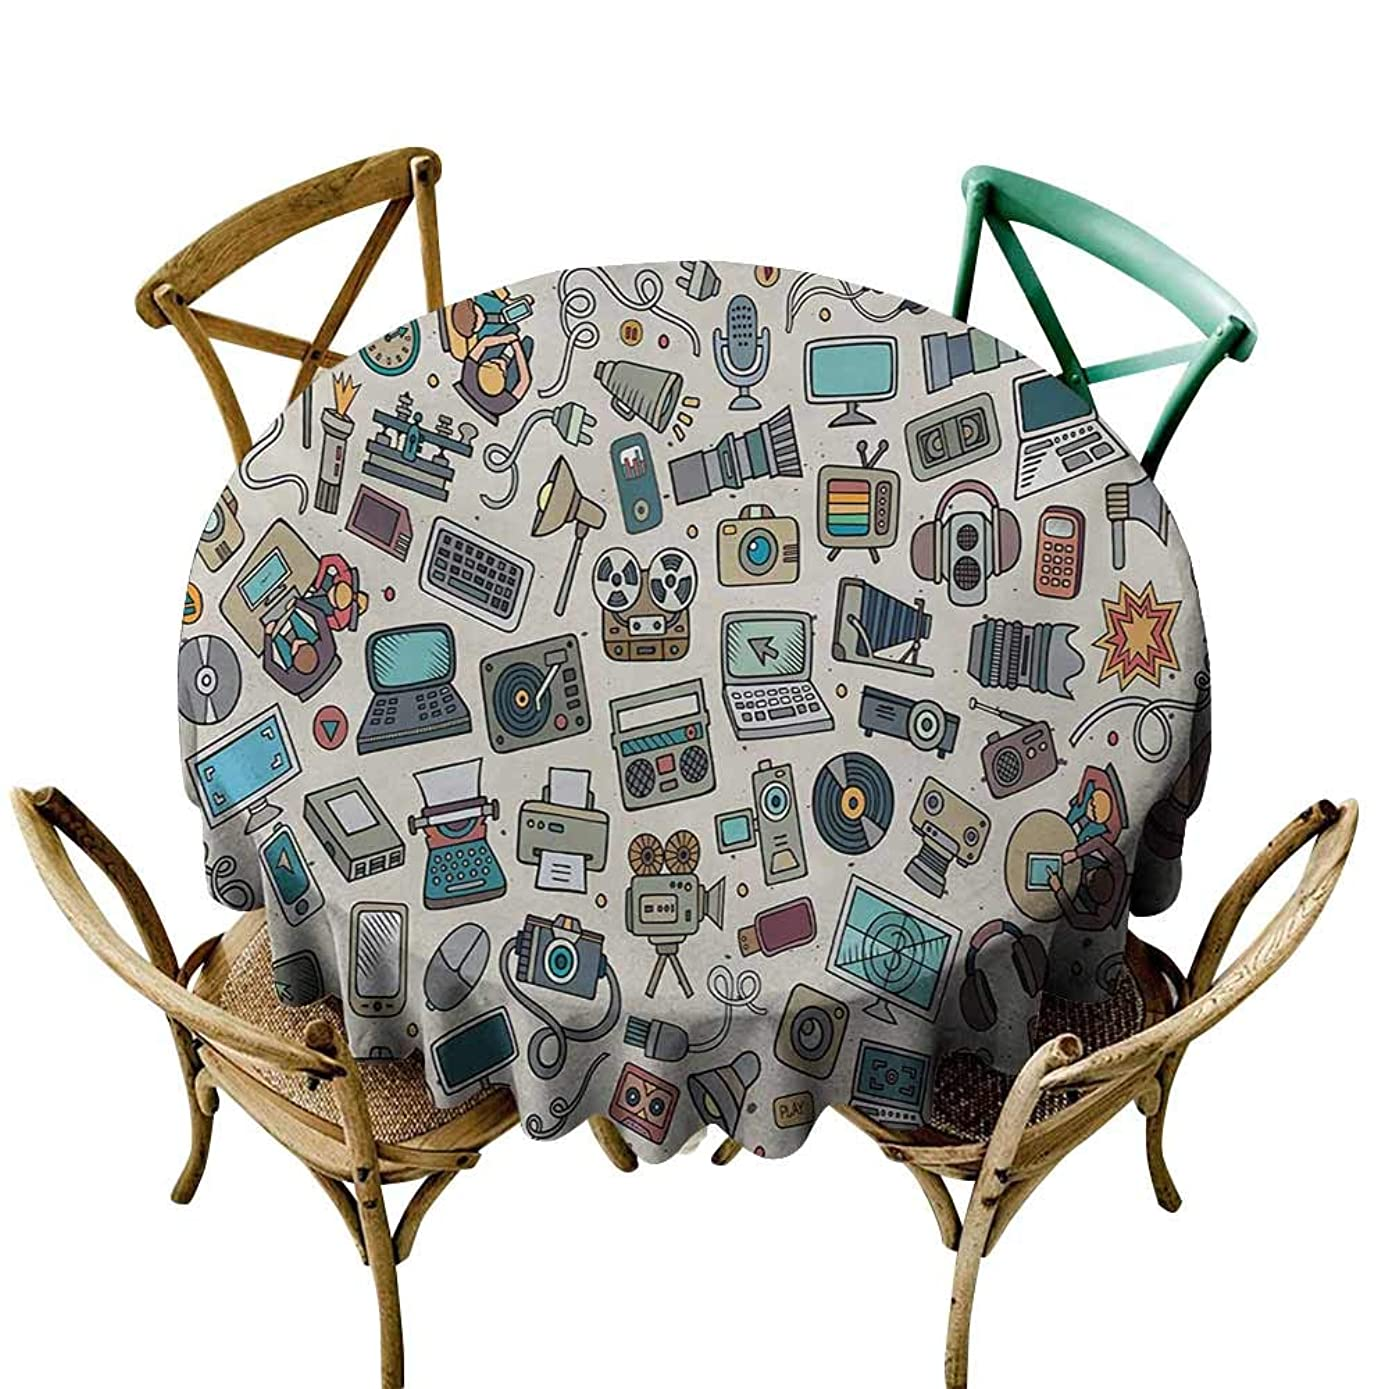 Dust-Proof Round Tablecloth Doodle Complation of Various Office Gadgets Recorder Tv Laptop Monitor Tablet Switch Mouse Picnic D55 Multicolor